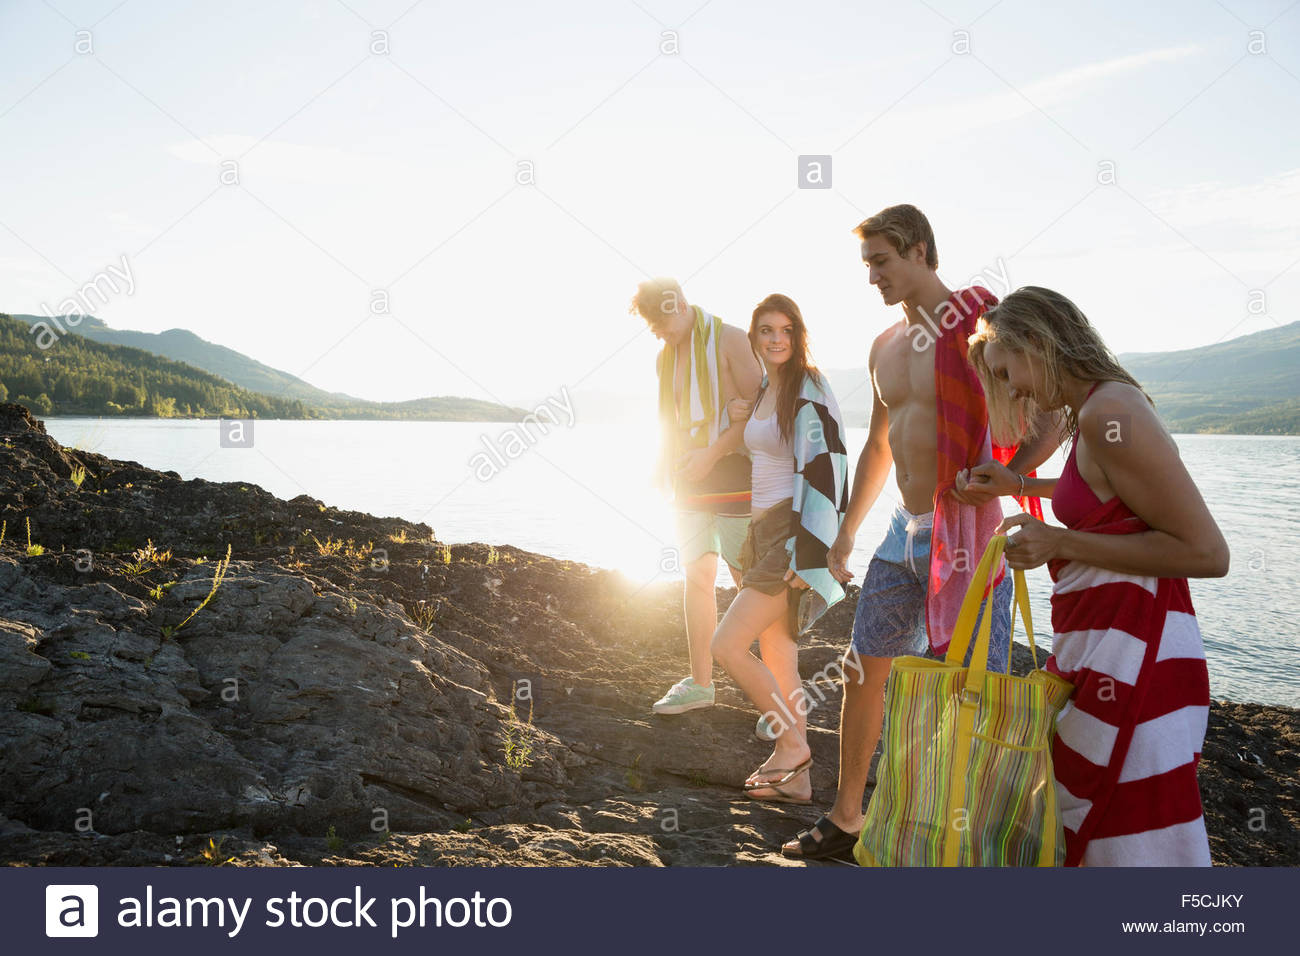 Young friends with towels on rocks at lakeside Stock Photo